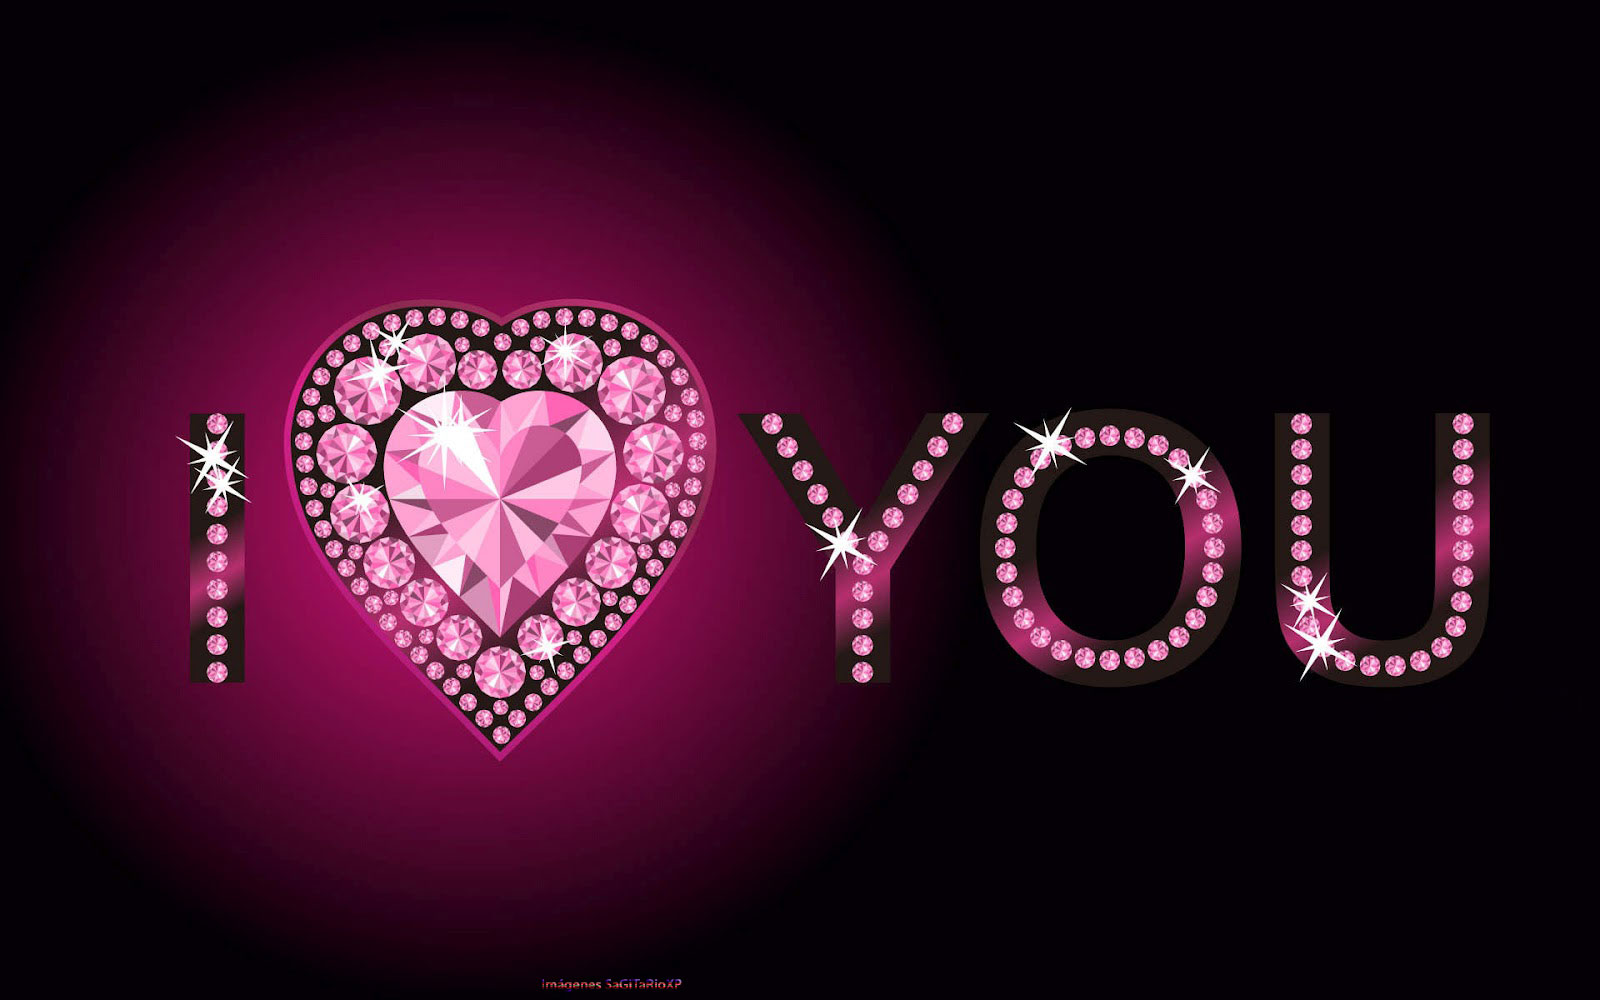 http://1.bp.blogspot.com/-uh2SsKSRV8Q/UPQ6ghvkDRI/AAAAAAAAD38/2uPCl68AbA0/s1600/i-love-you-pink-diamond-wallpapers.jpg